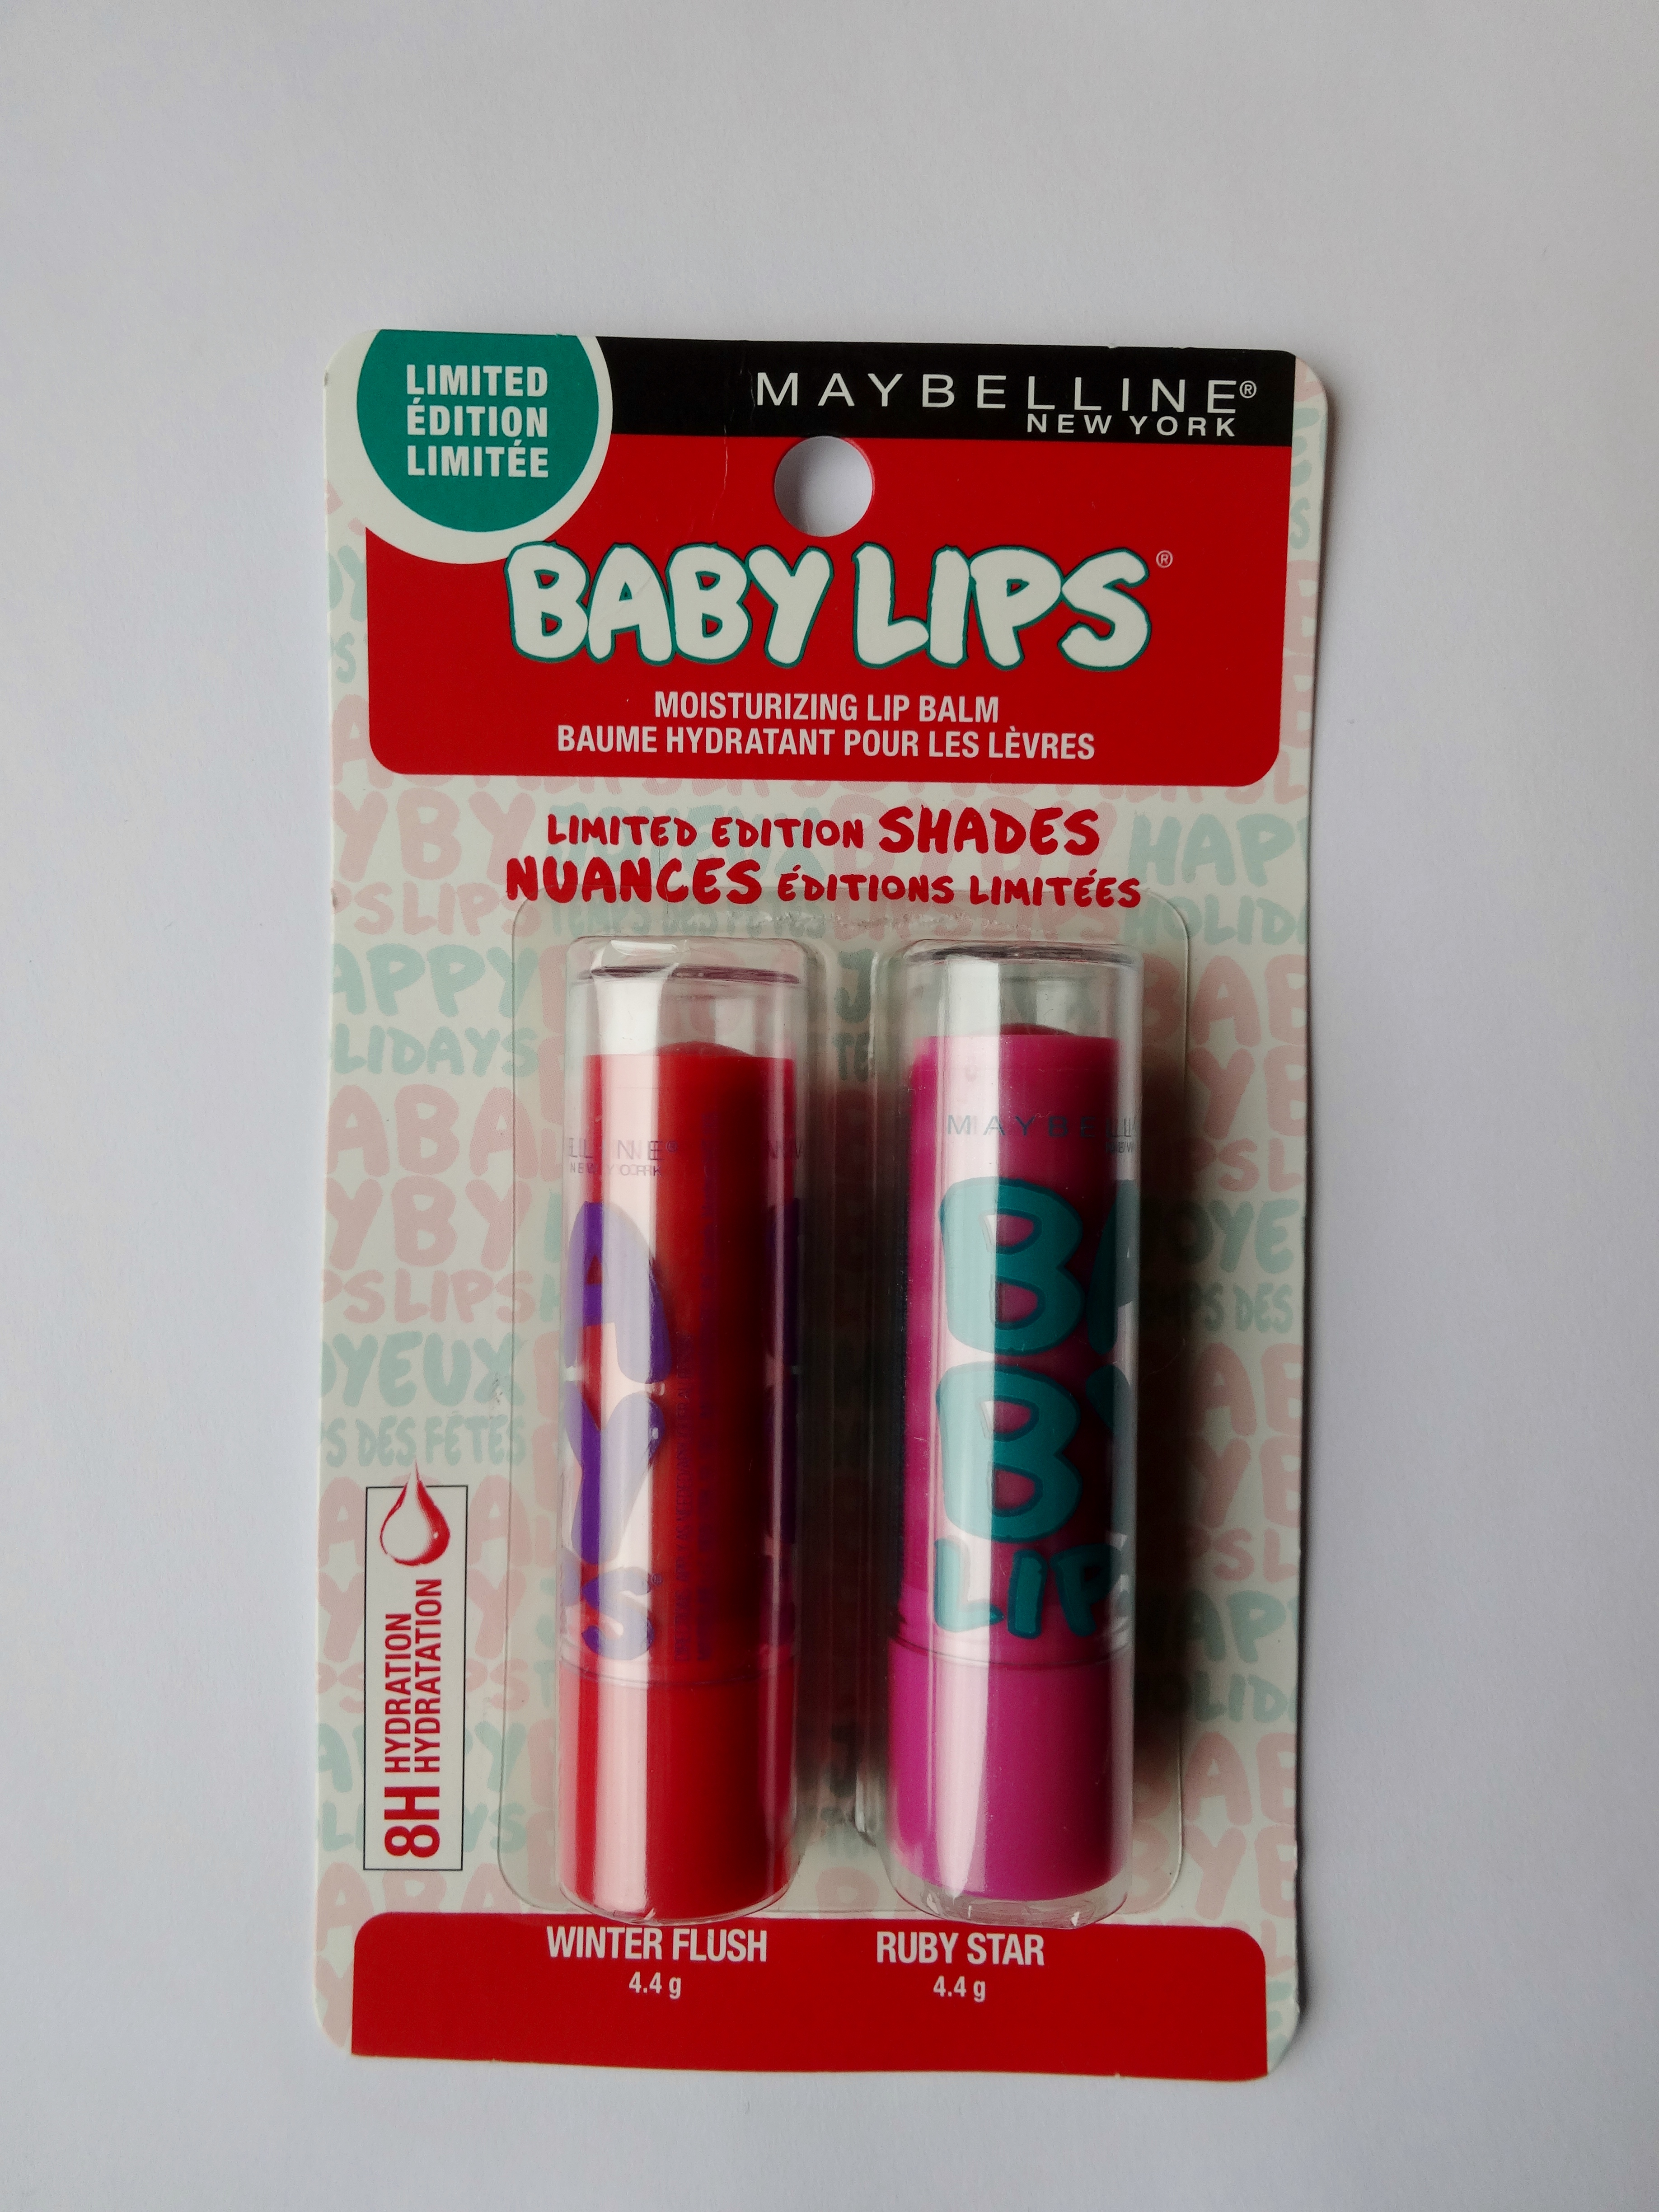 Maybelline baby lips   new limited edition   review, photos.